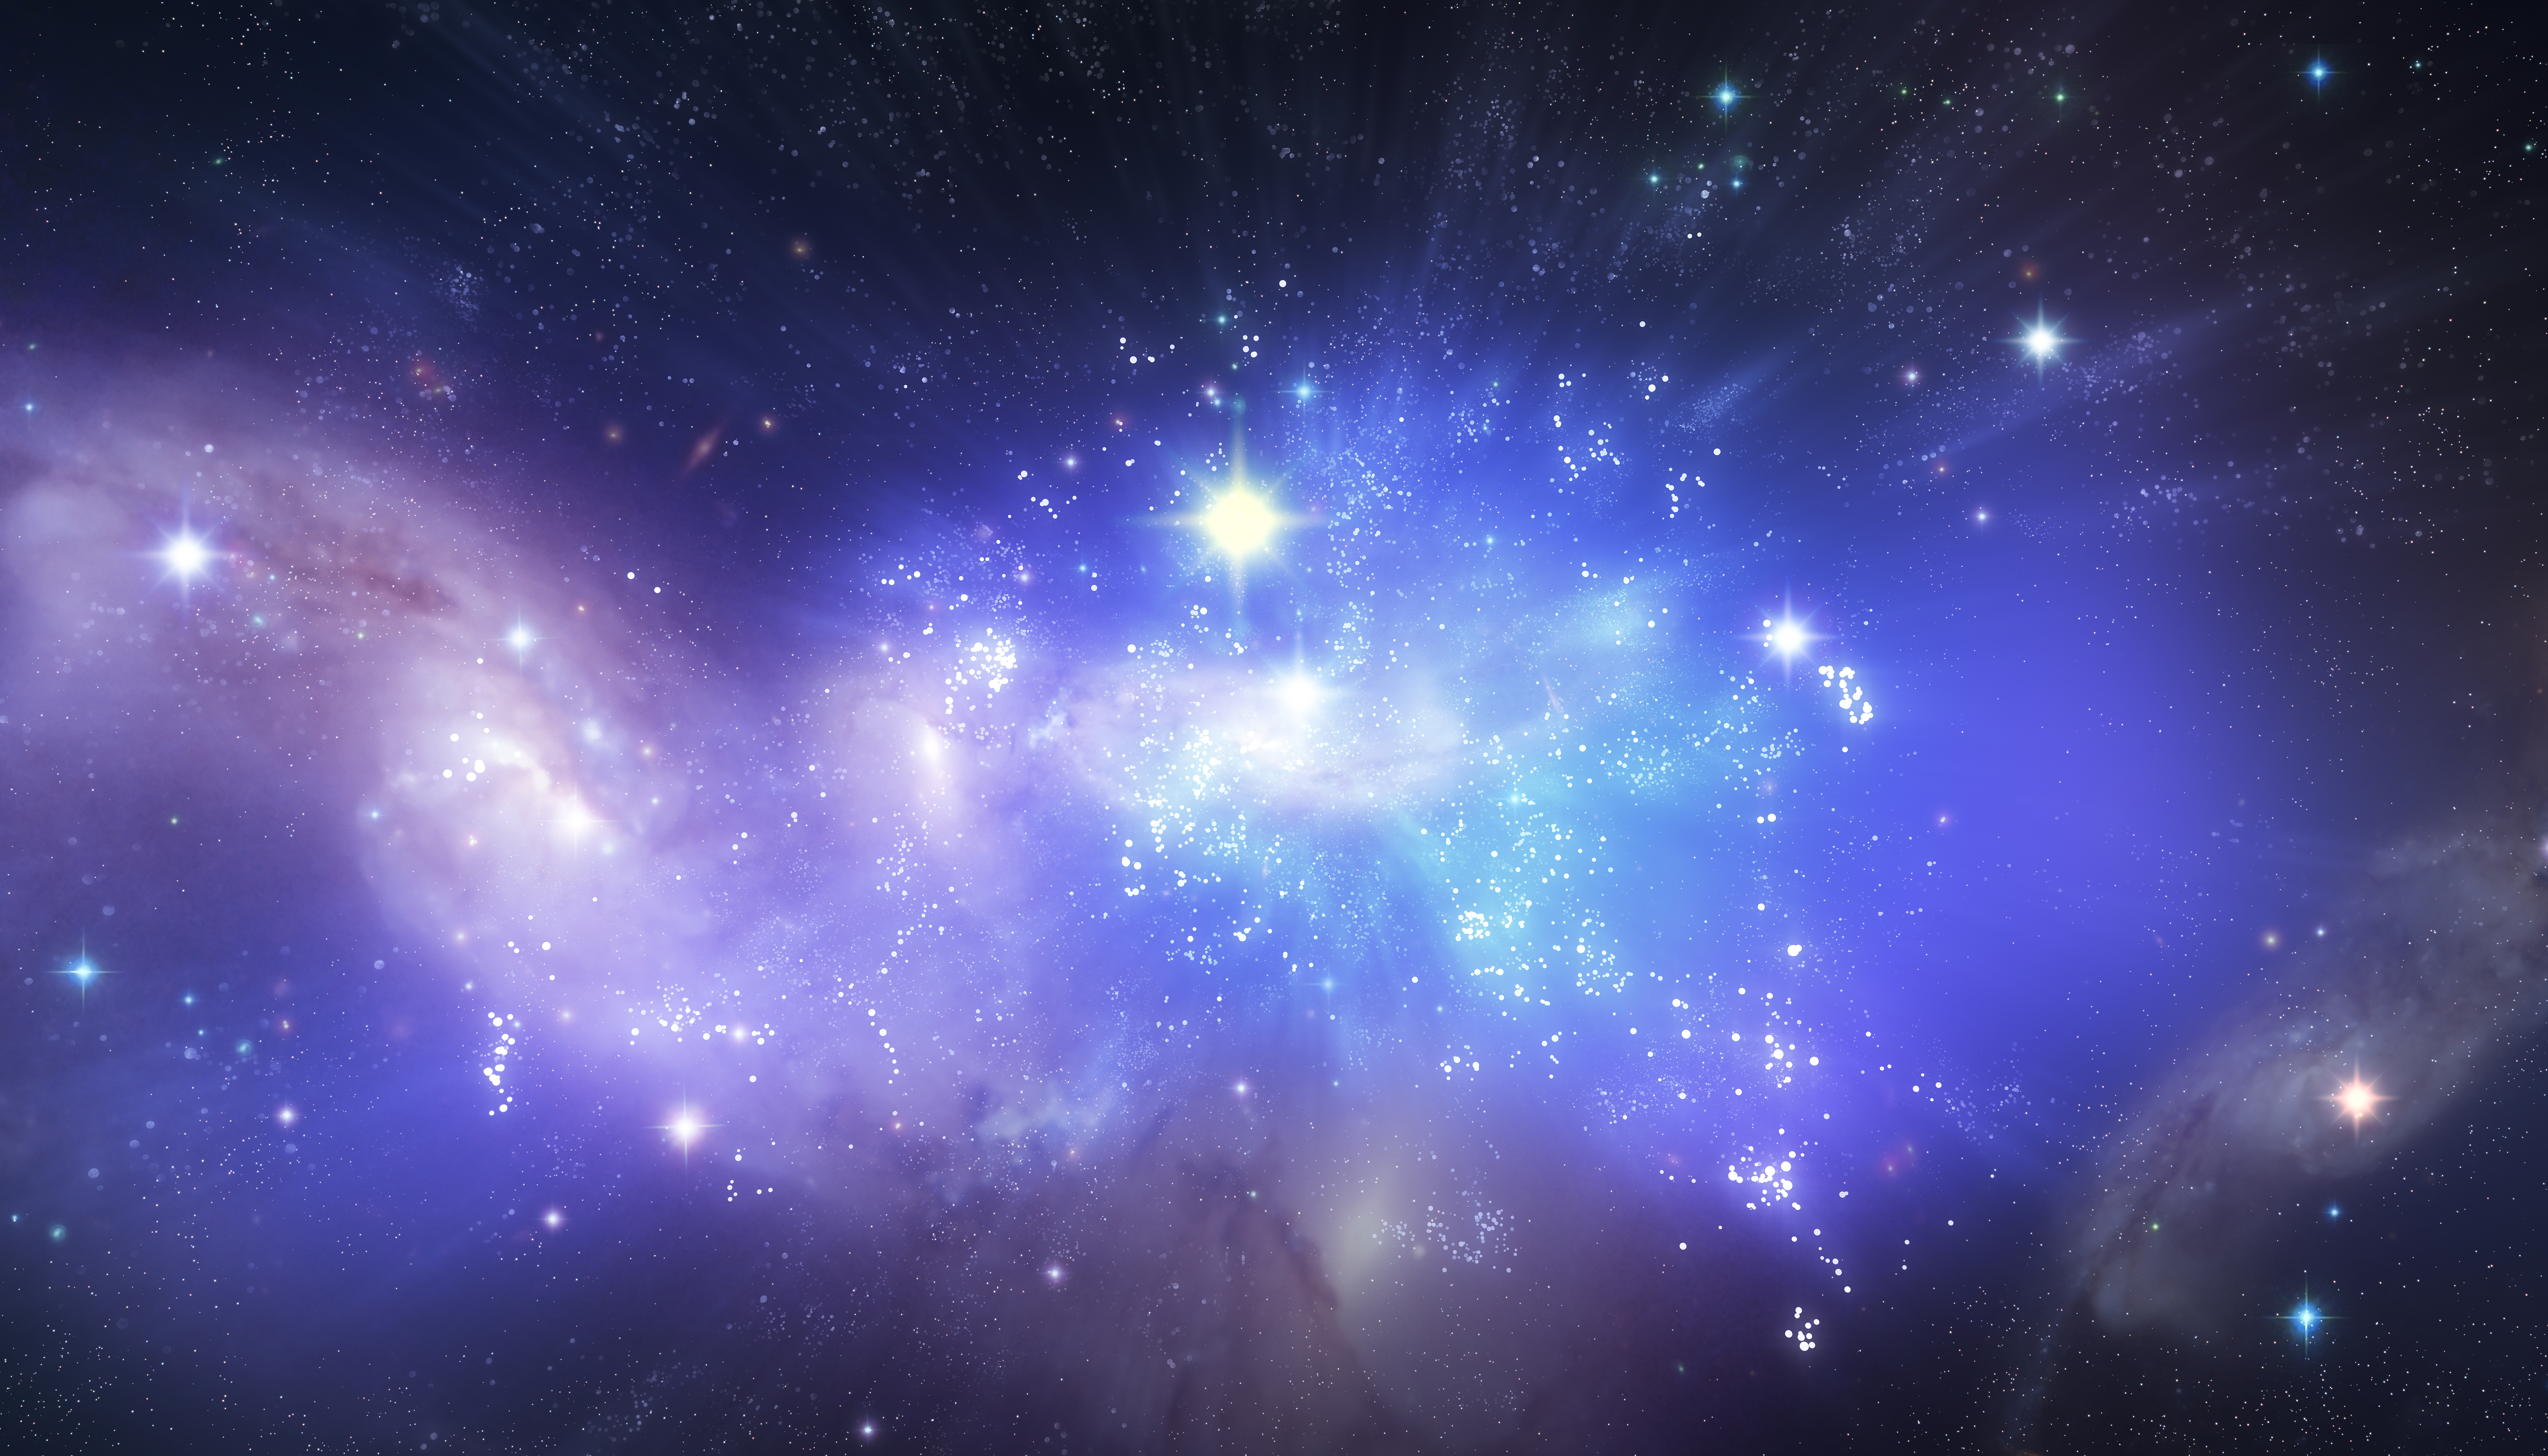 Fantasy Deep Space Night sky with stars, Abstract, Outdoor, Hydrogen, Indigo, HQ Photo